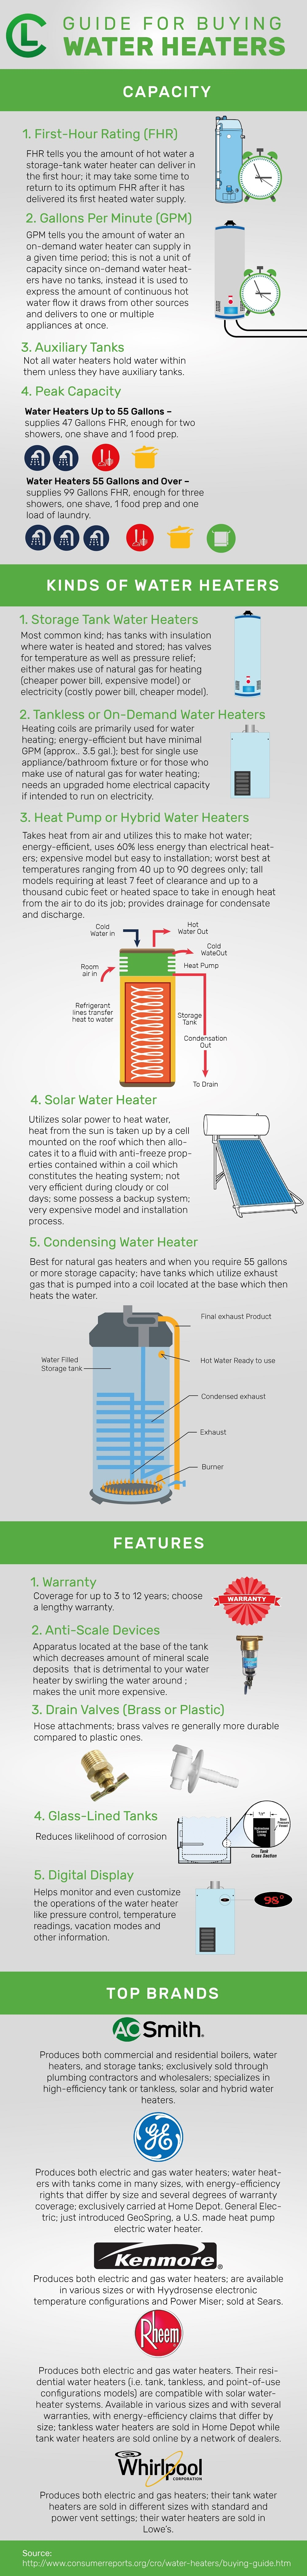 Guide For Buying Water Heaters Infographic